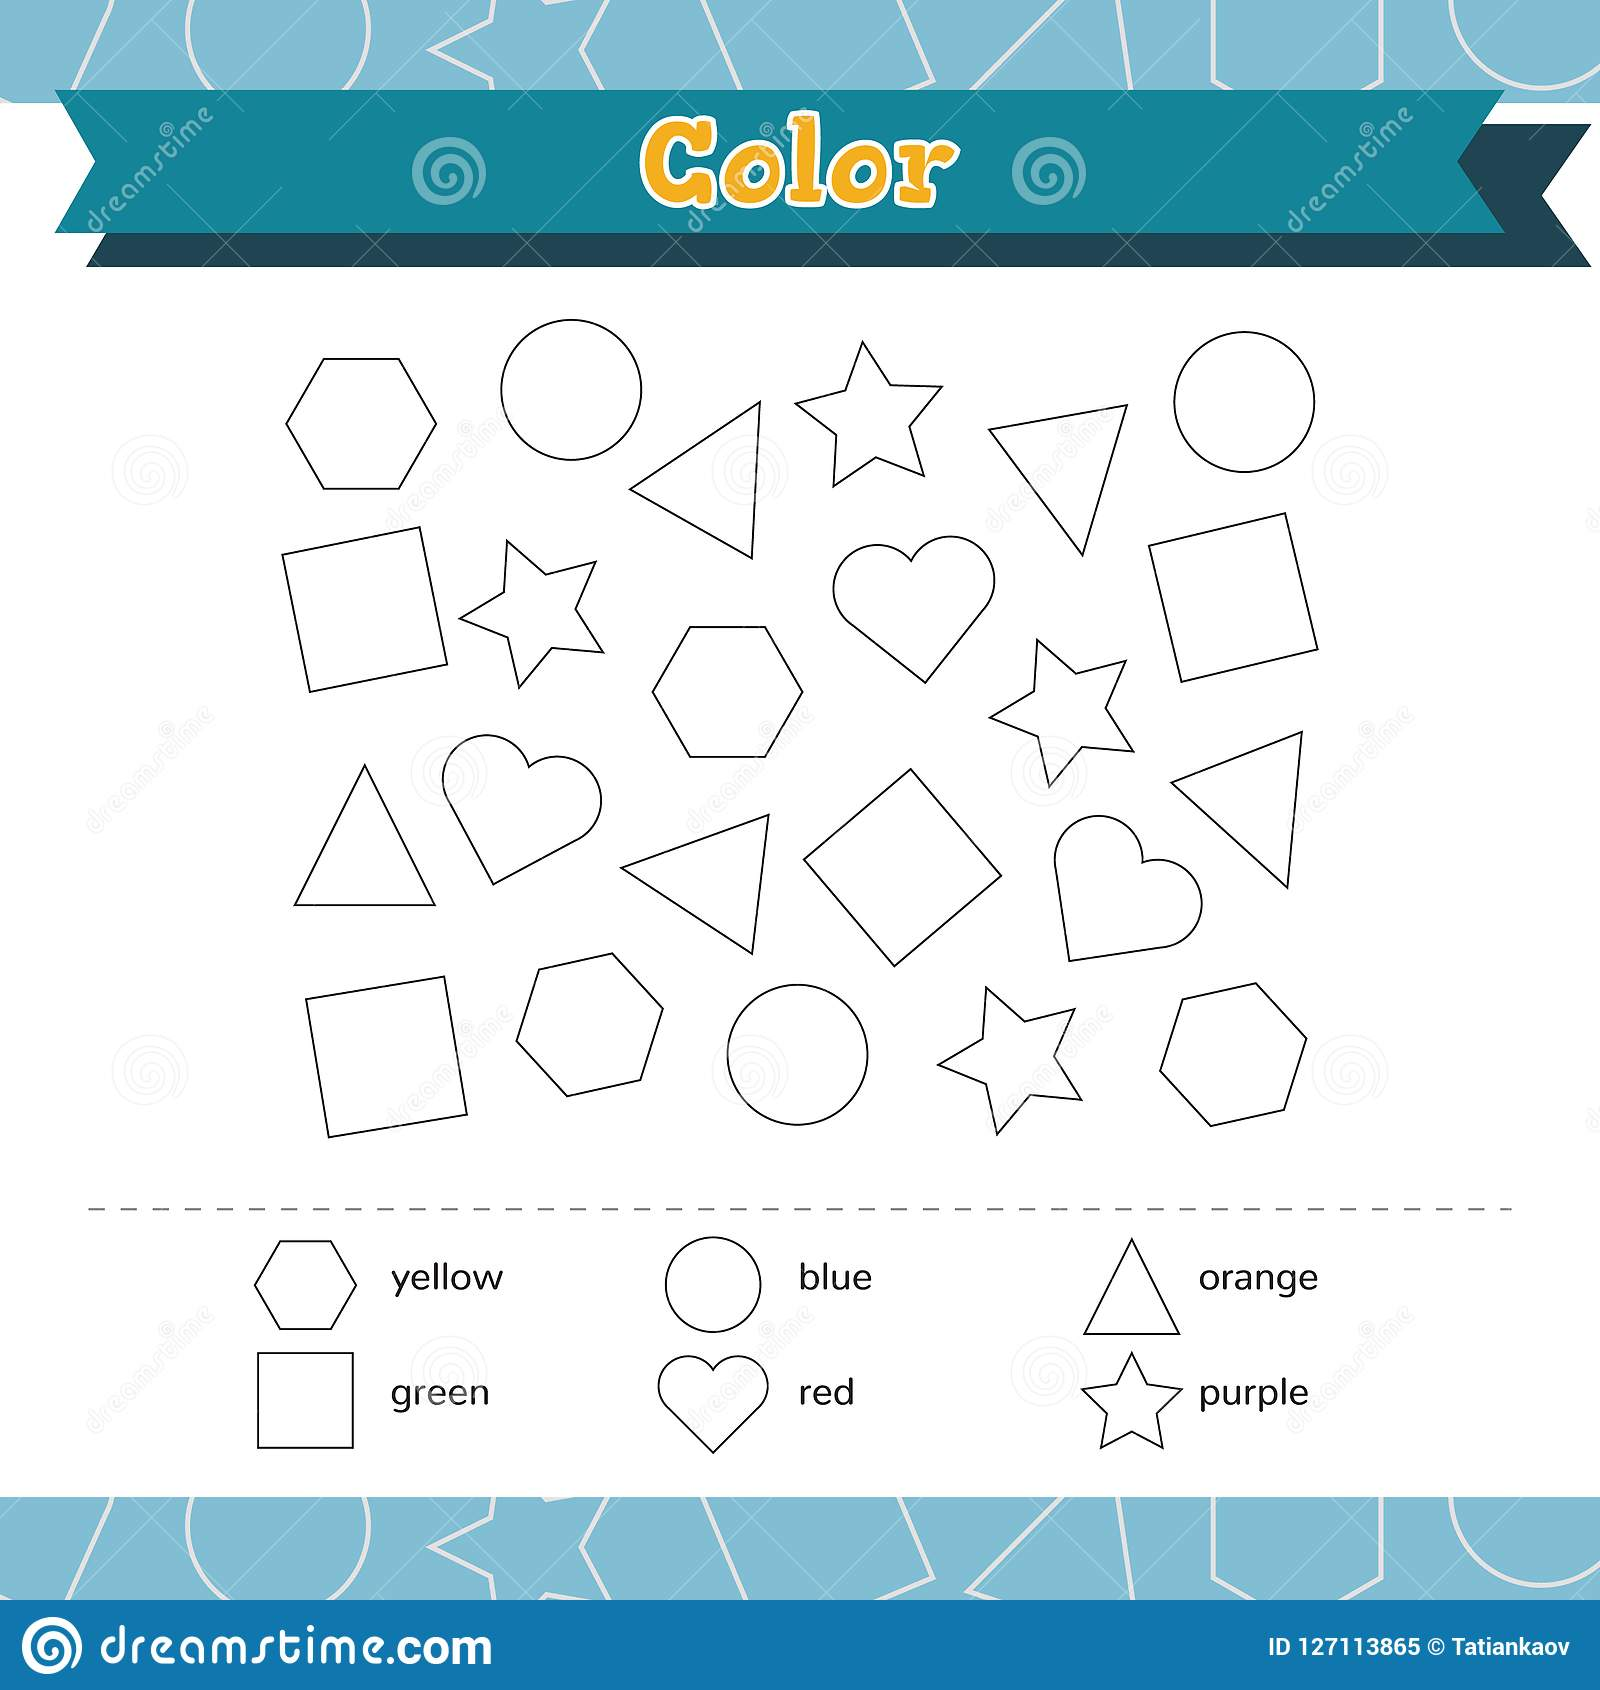 Learn Shapes And Geometric Figures Color Preschool Or Kindergarten Worksheet Vector